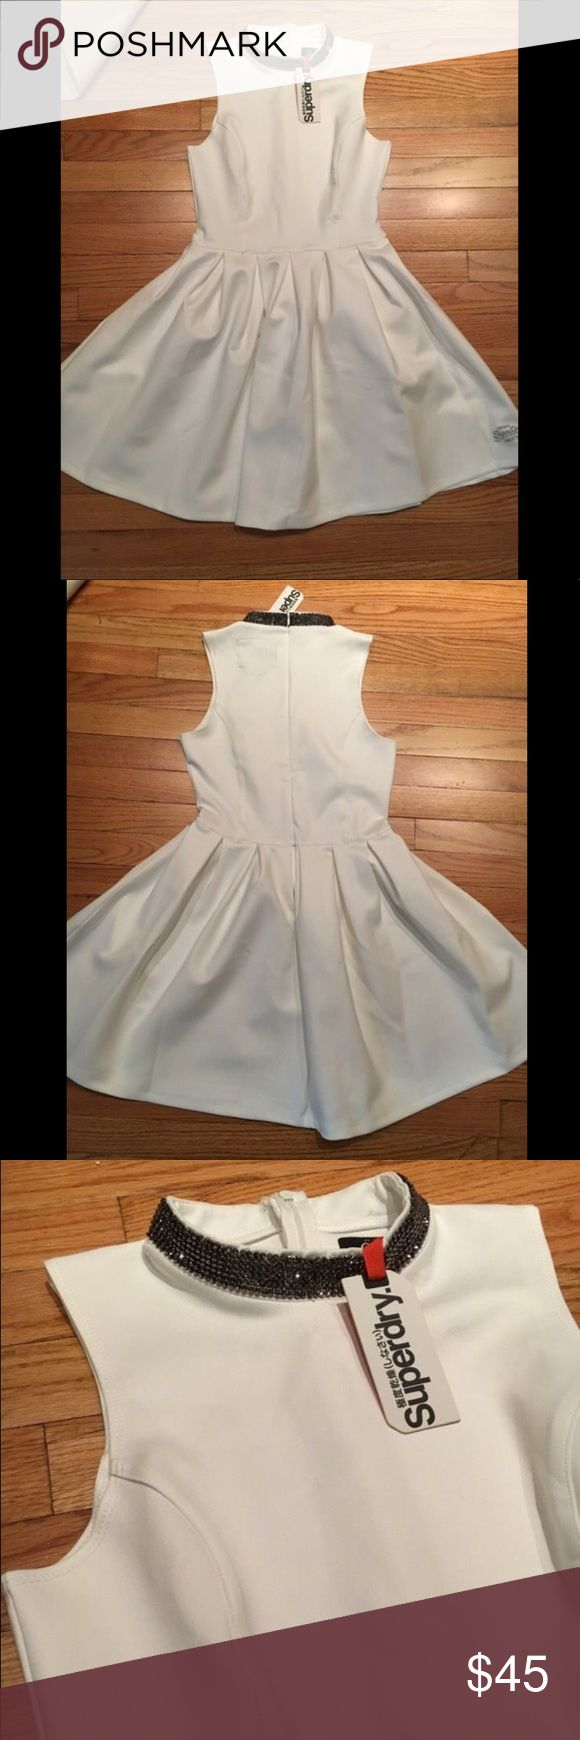 Super Dry White Tennis Dress Super dry white tennis dress with beaded collar perfect for work or that summer rooftop party Superdry Dresses